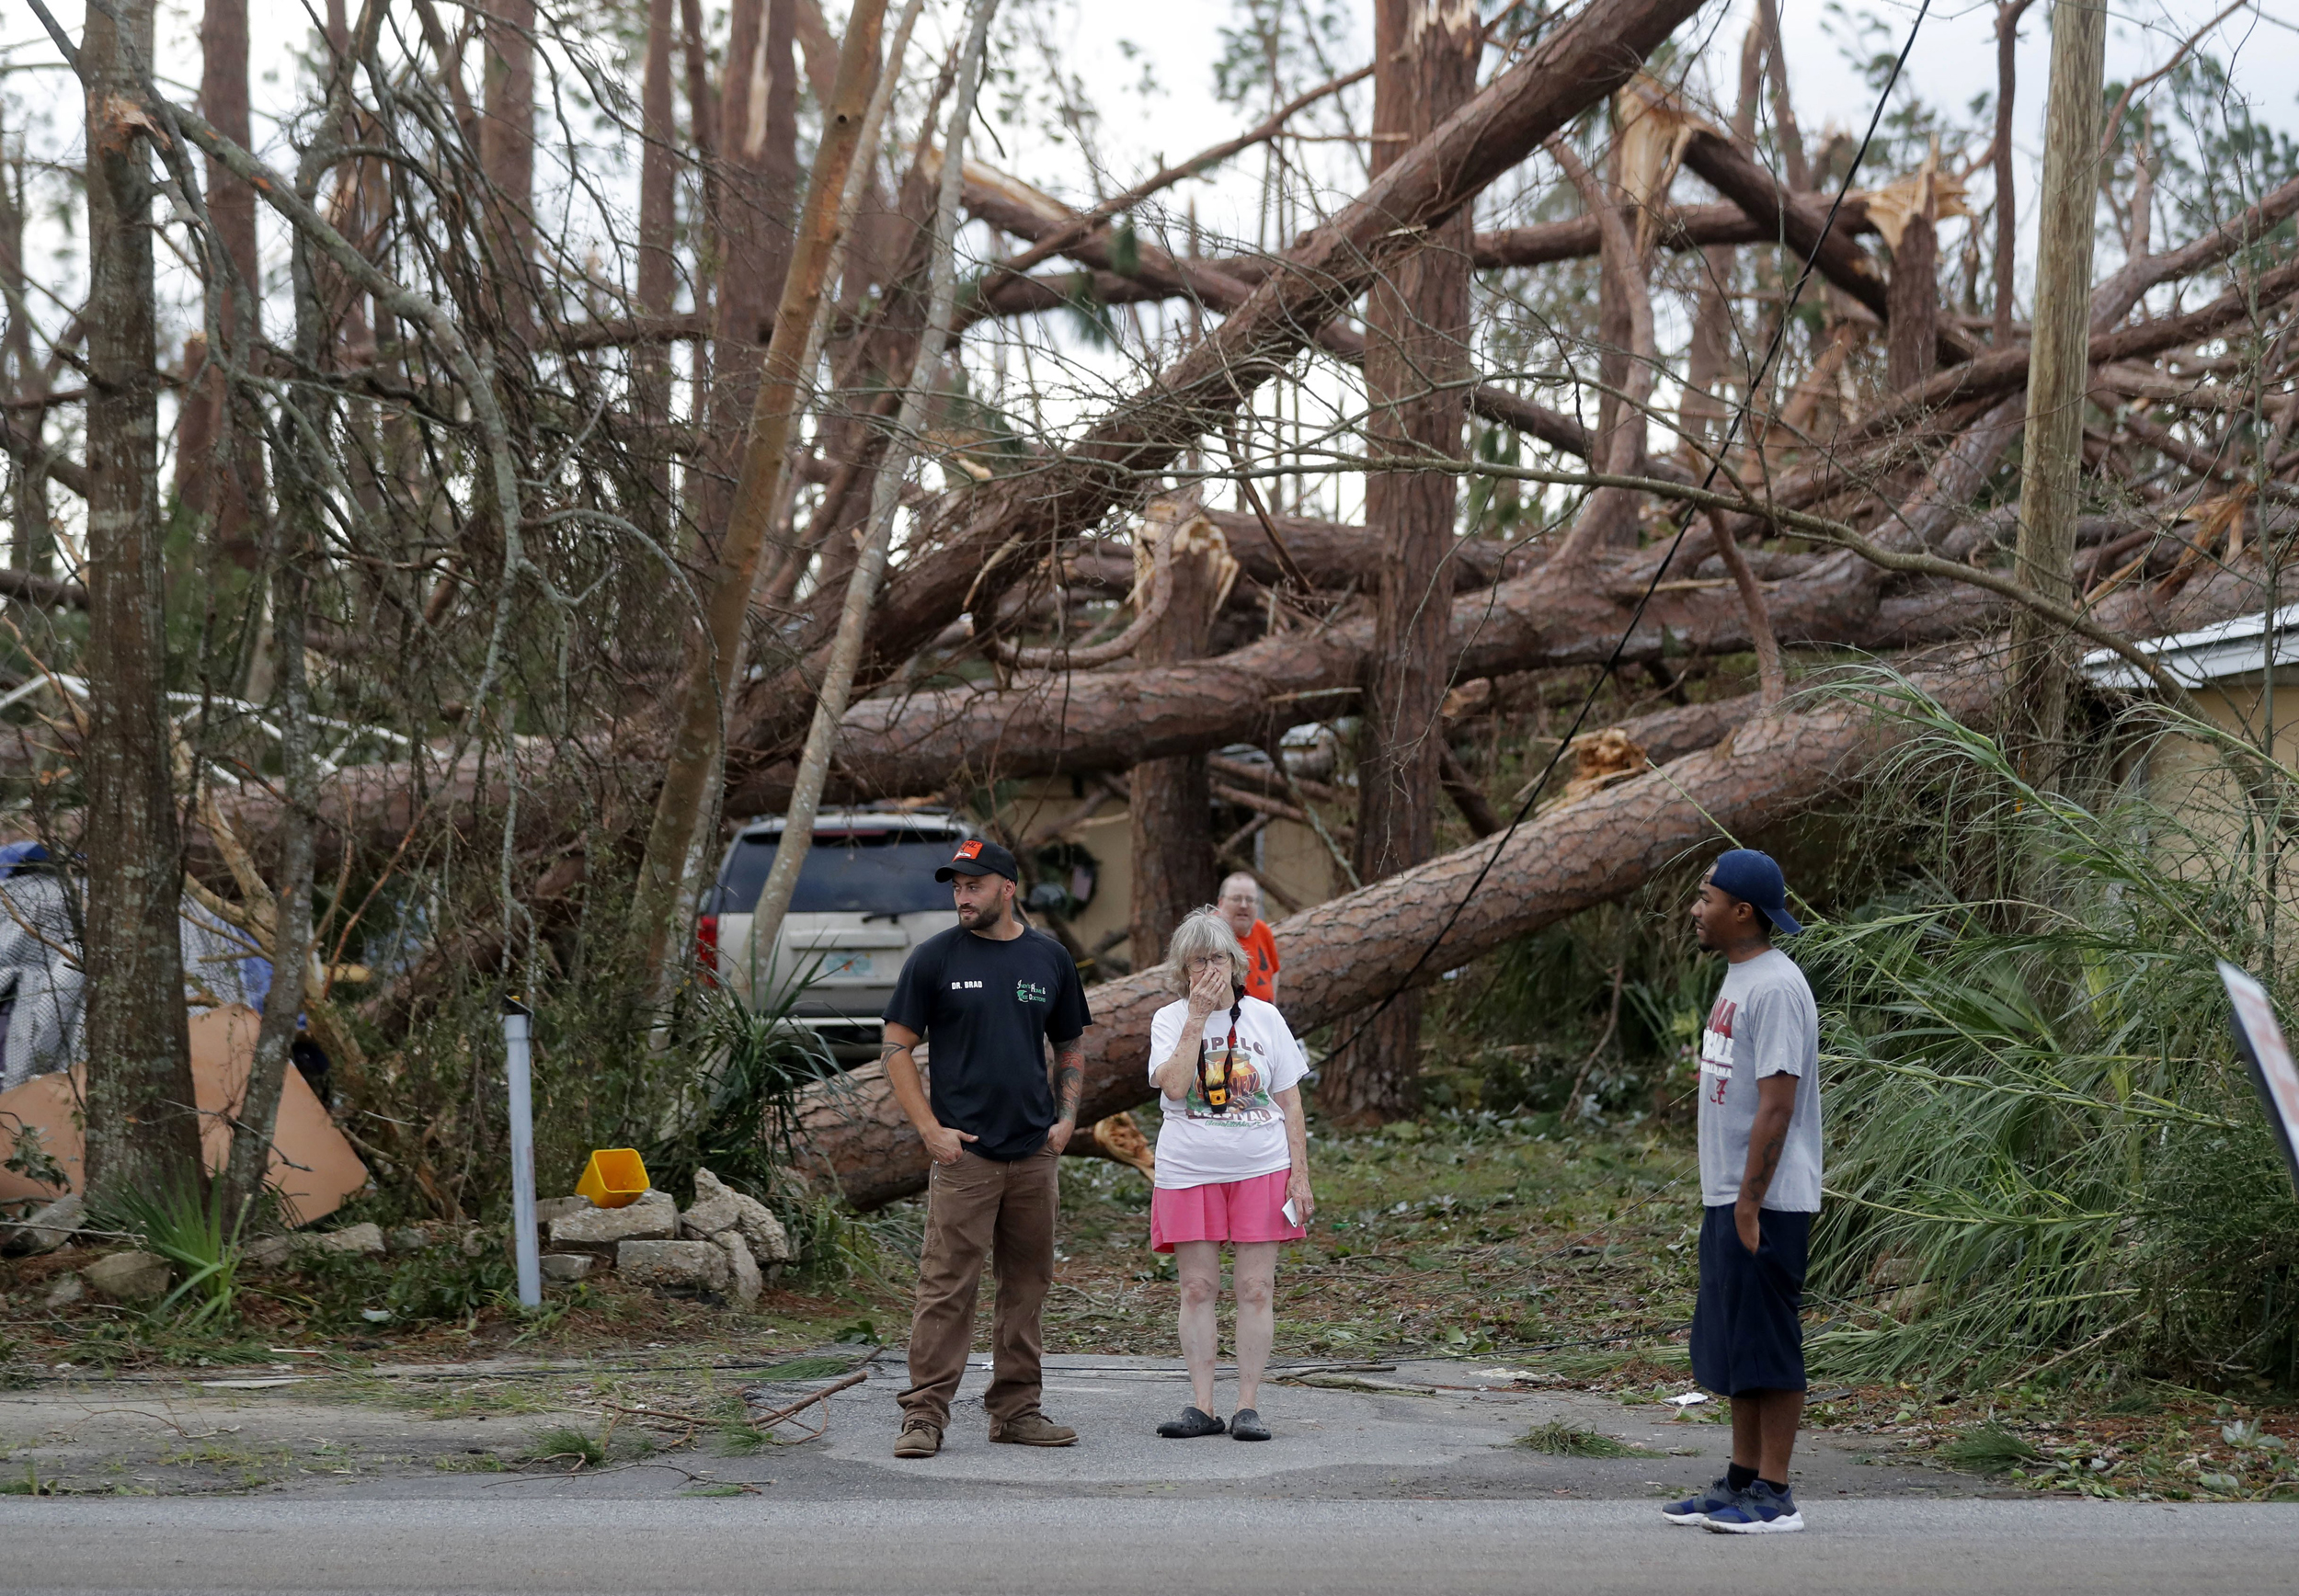 Hurricane-Michael-death-toll-rises-as-rescue-crews-struggle-to-access-hard-hit-areas